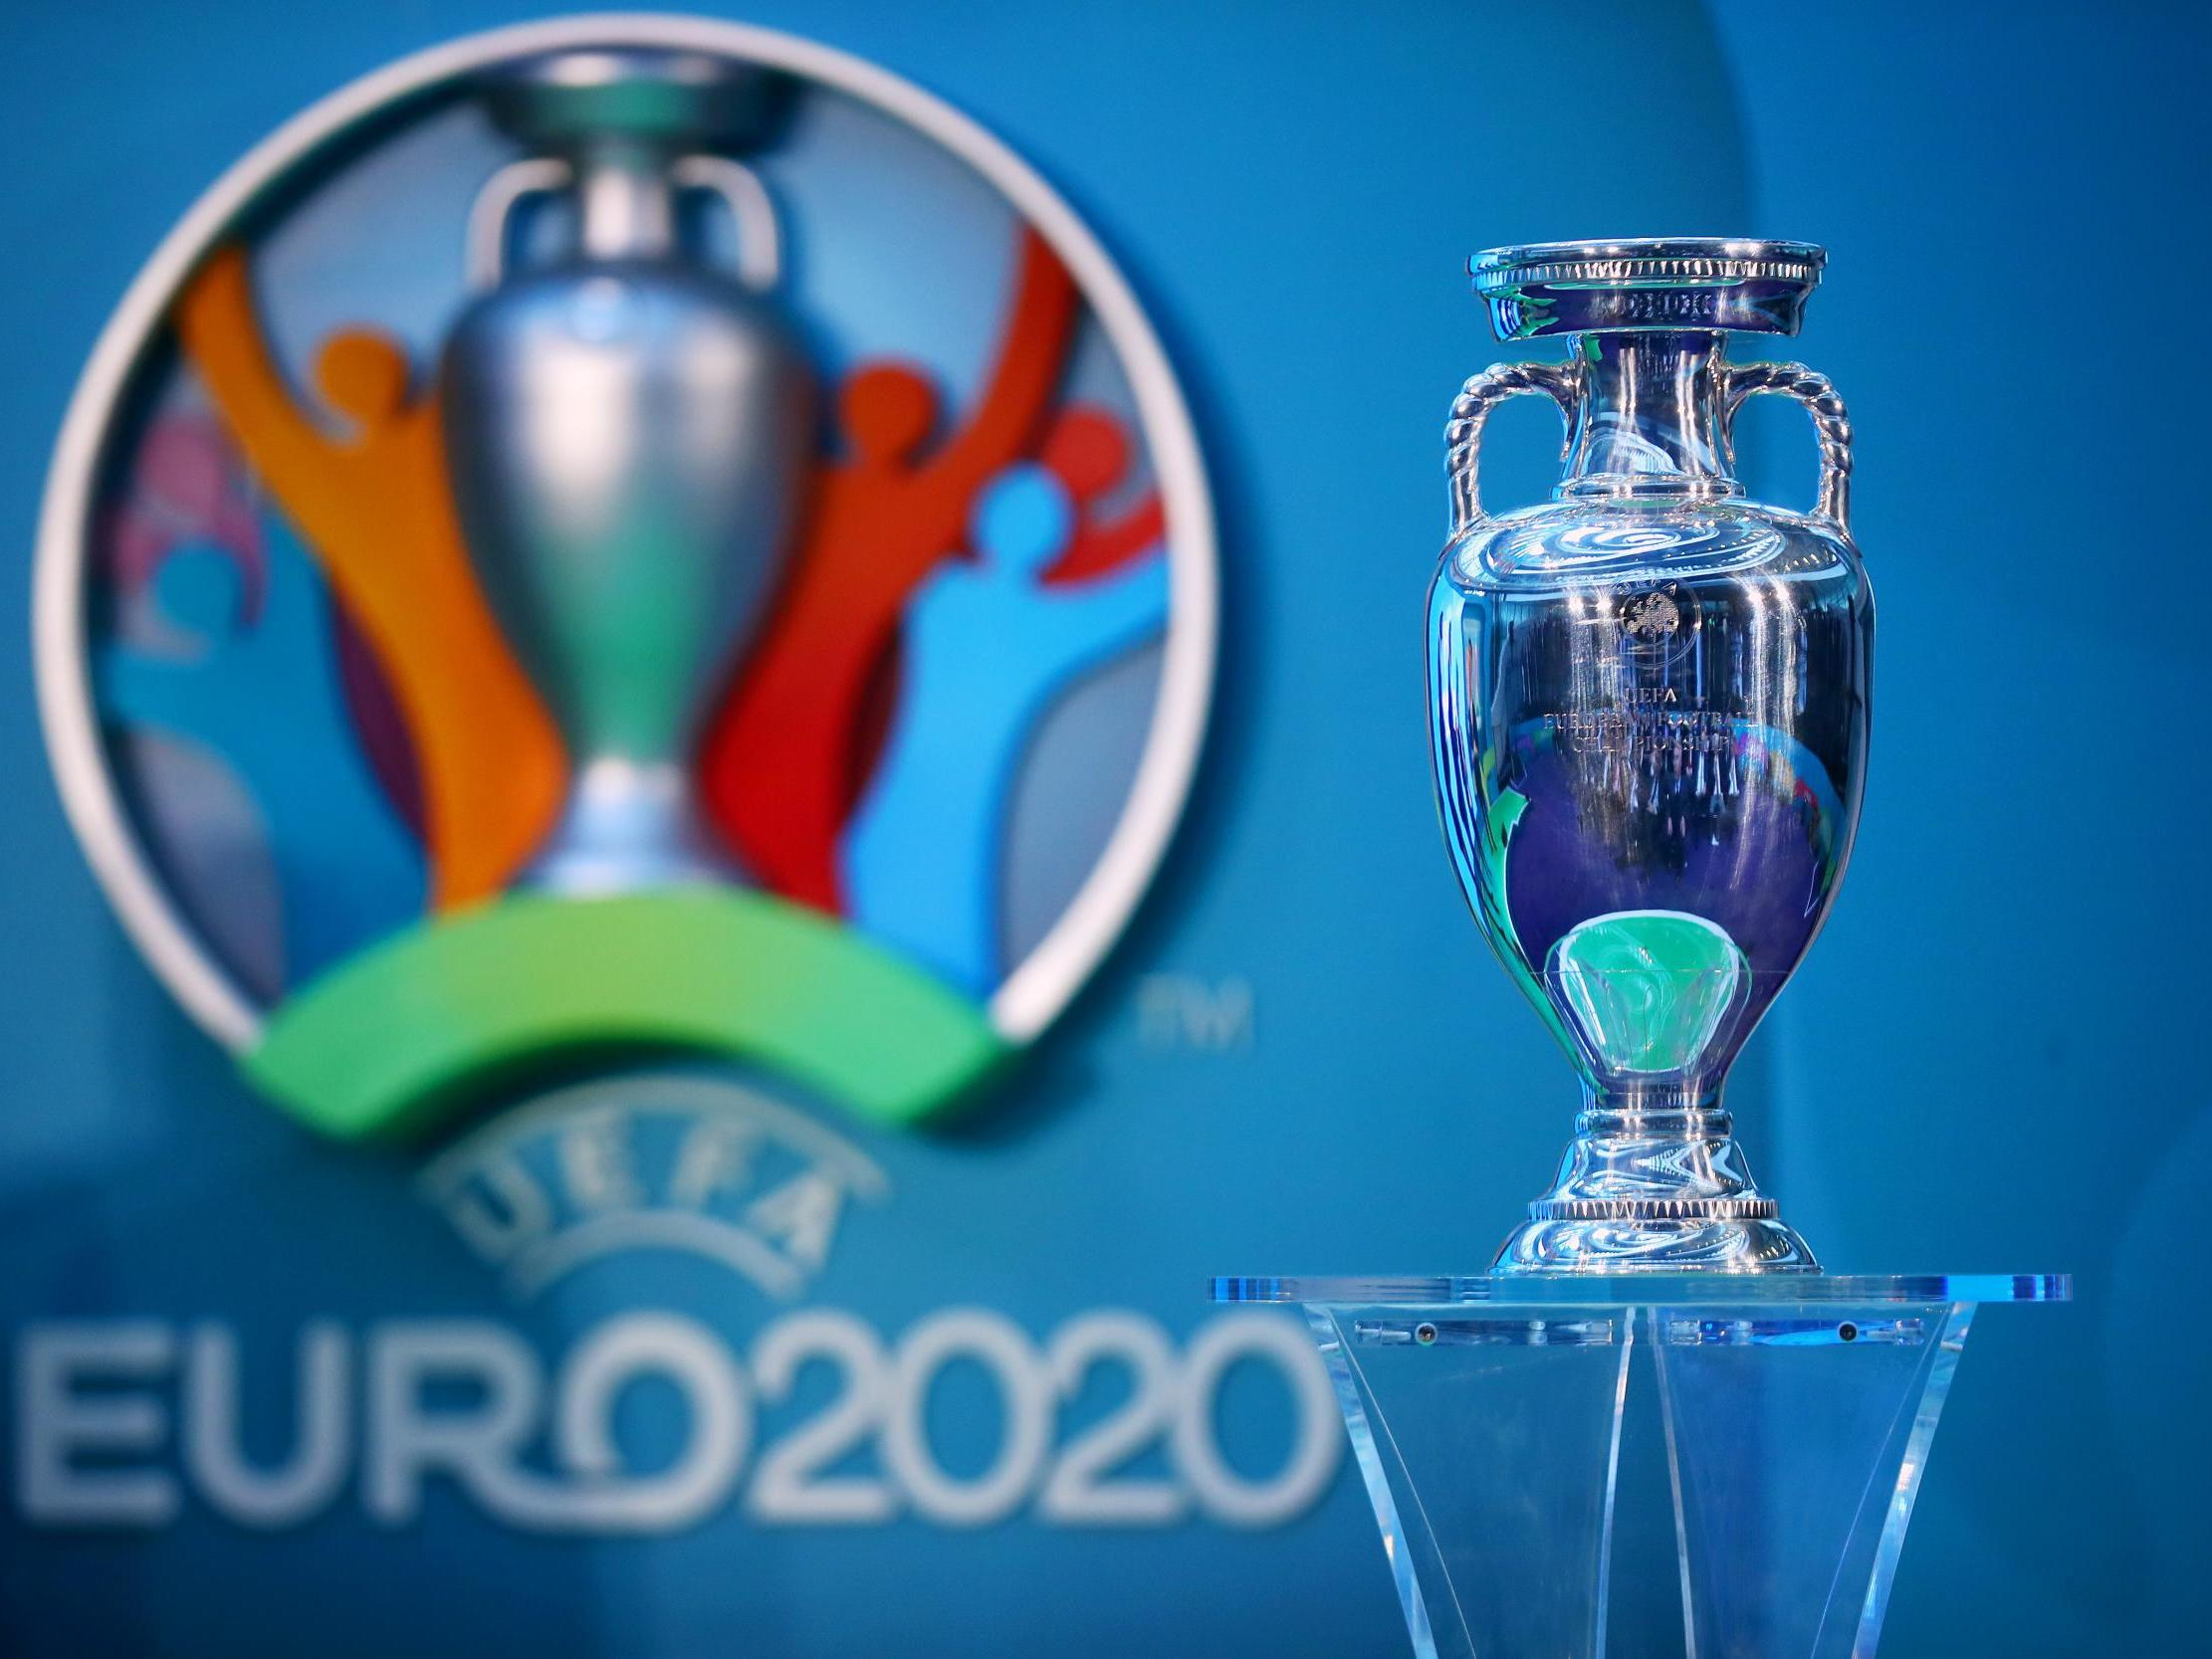 Euro 2020 Fixtures Full Schedule Groups Dates And Venues The Independent The Independent